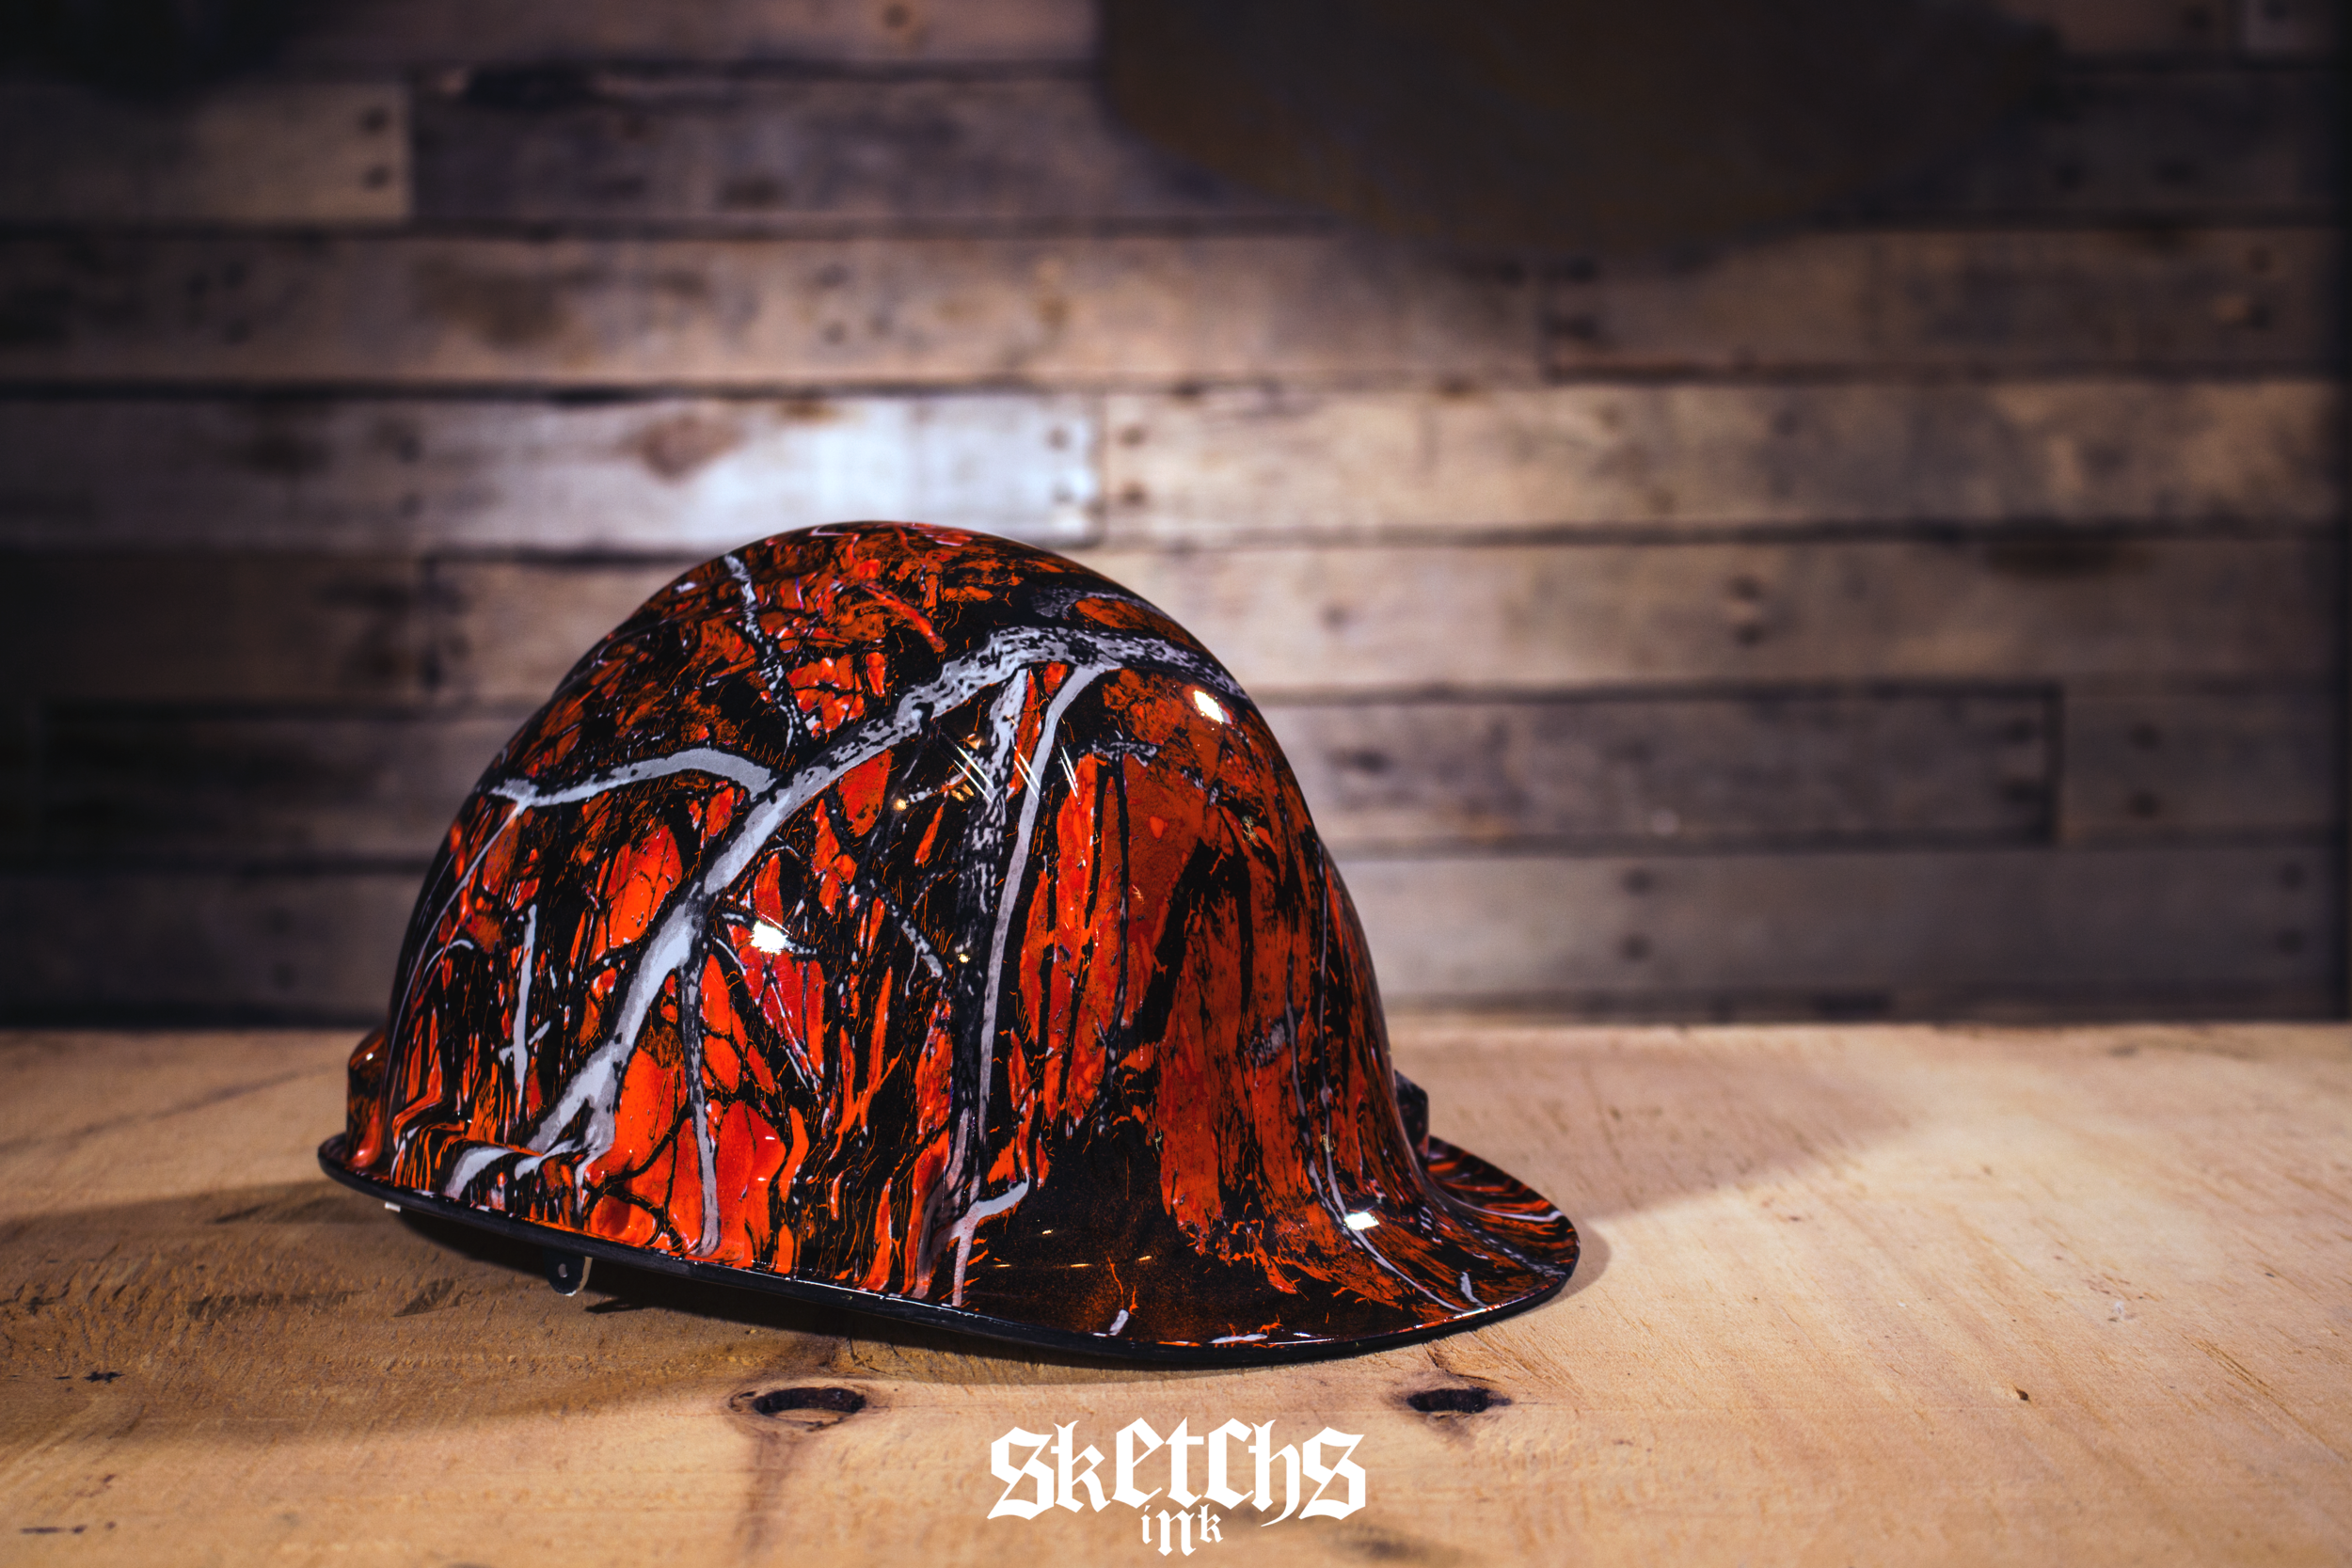 Custom Hard Hat Hydrographics by Sketchs Ink Ottawa Canada